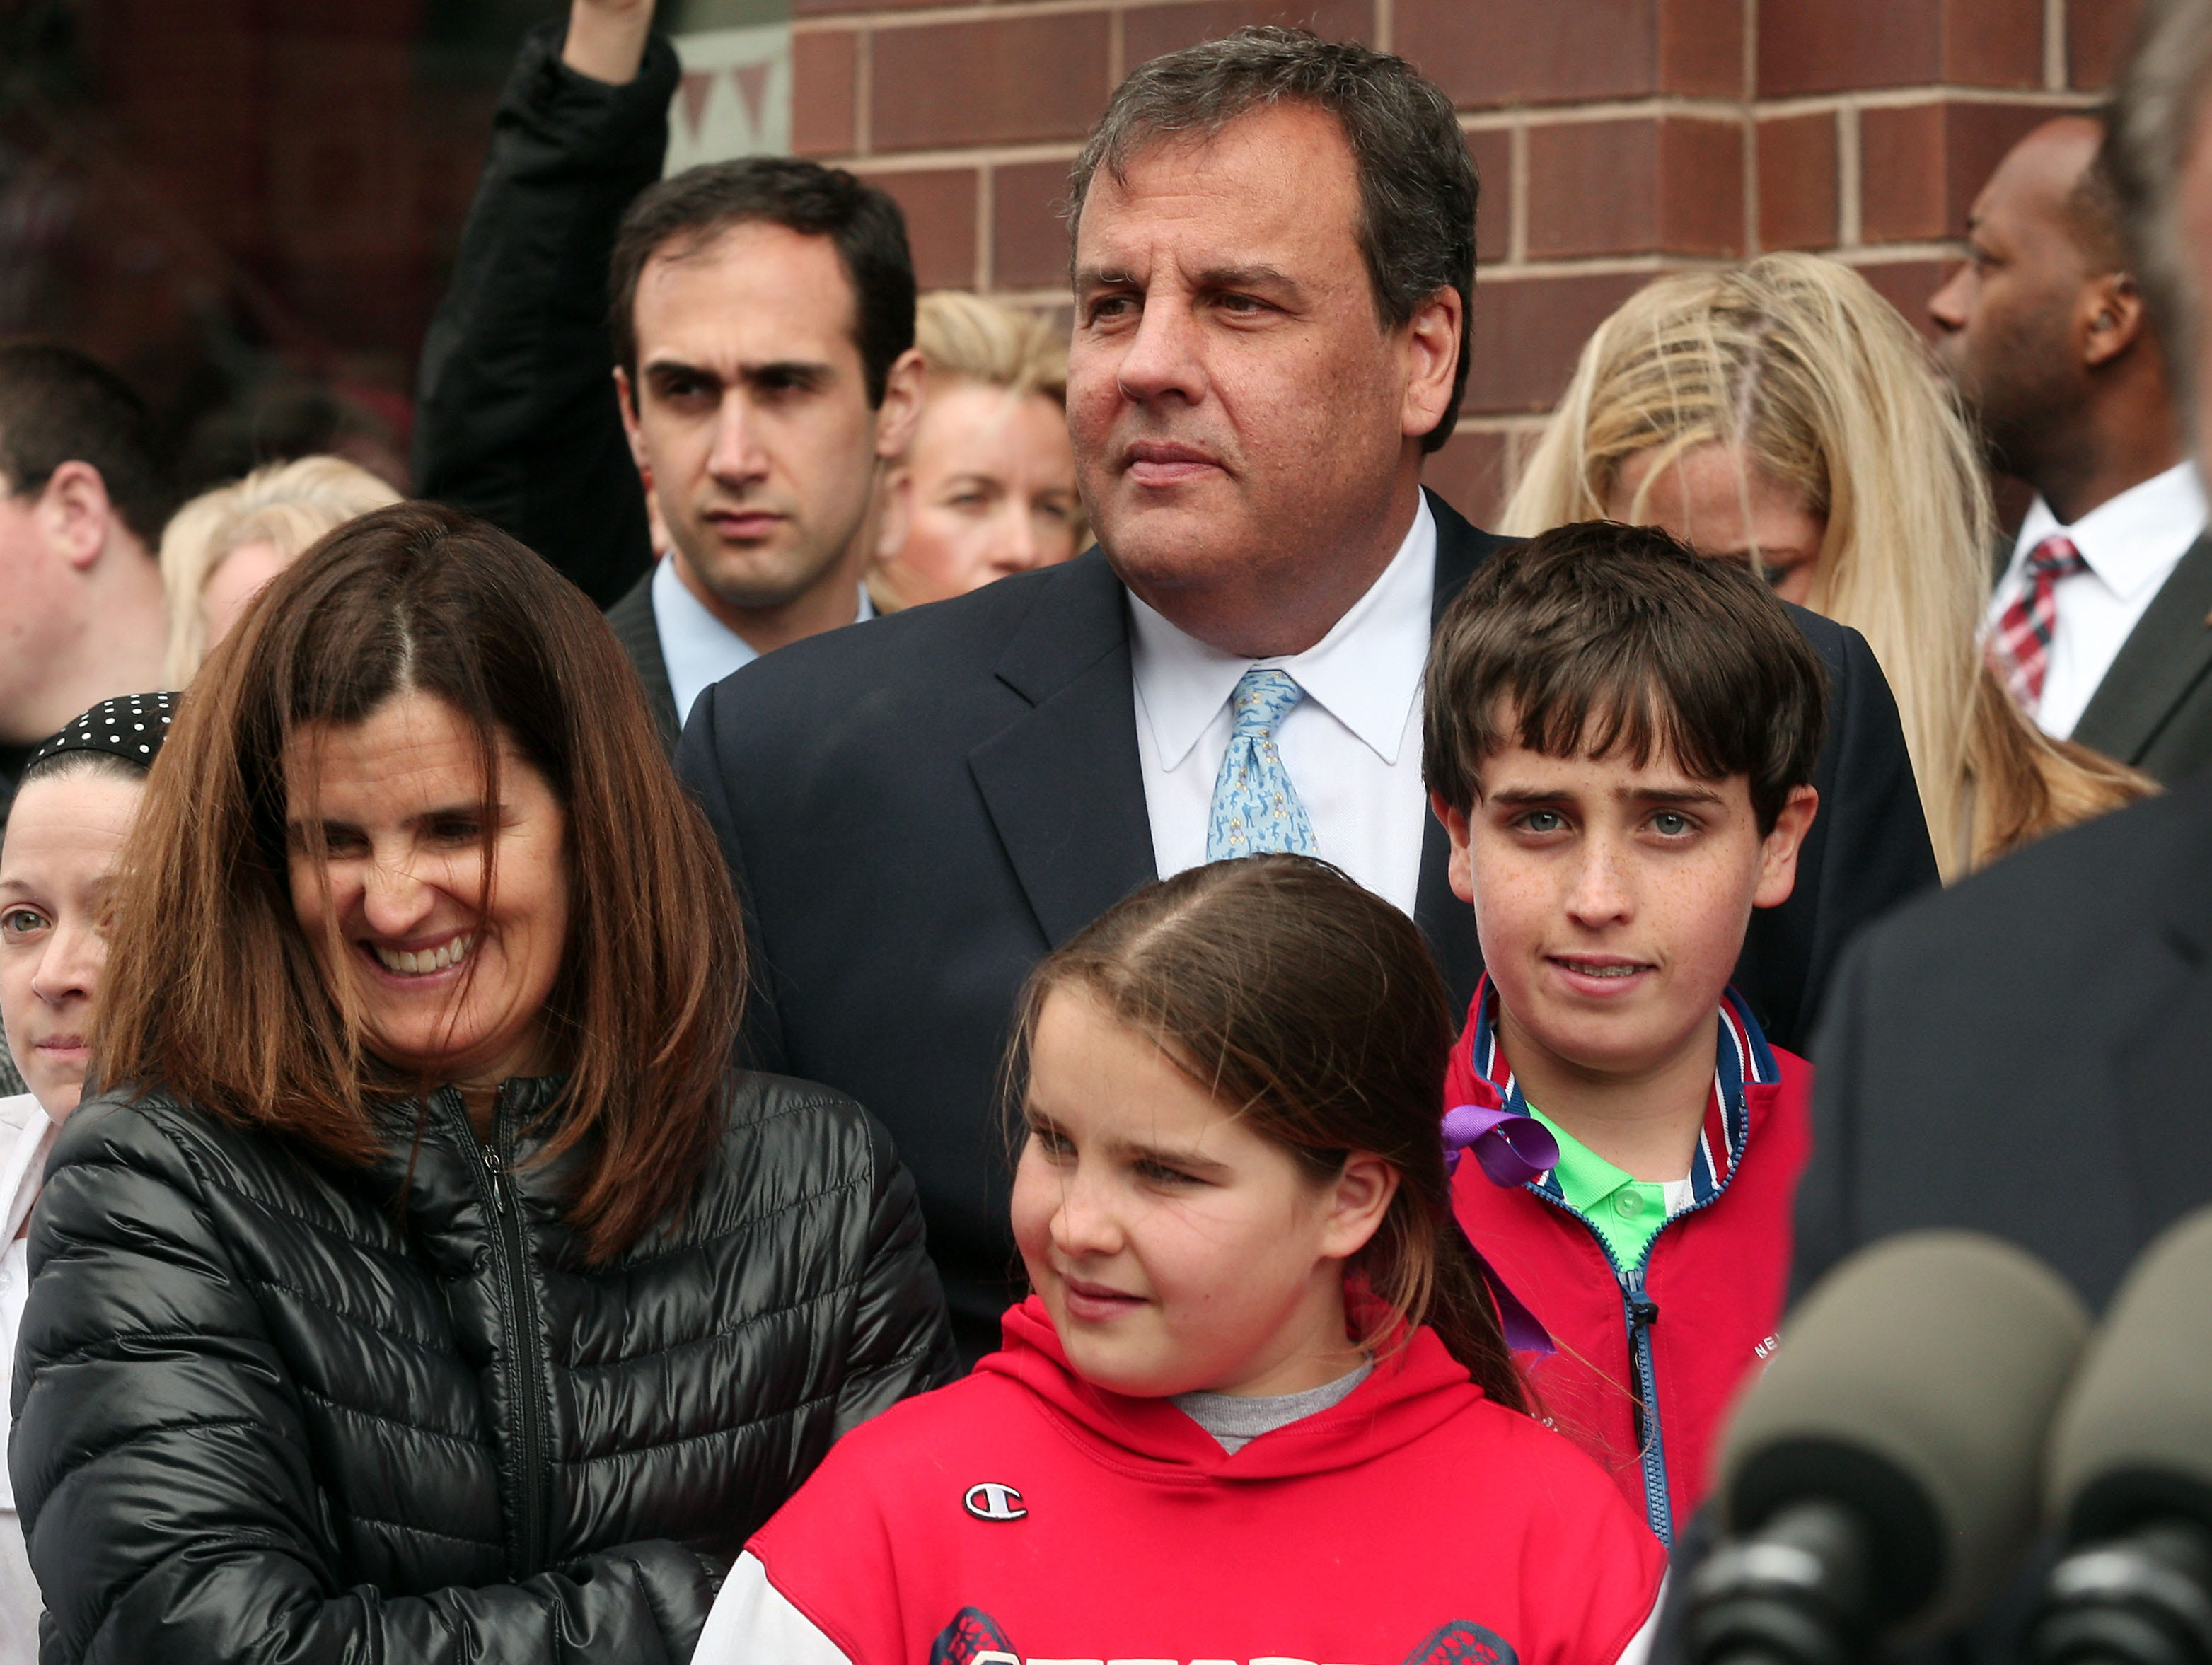 Governor Chris Christie and family attended the Grand Opening of the newest Carlo's Bakery in Morristown. The Cake Boss, Buddy Valastro was on hand for the opening. March 20, 2014, Morristown, NJ. Bob Karp/staff photographer